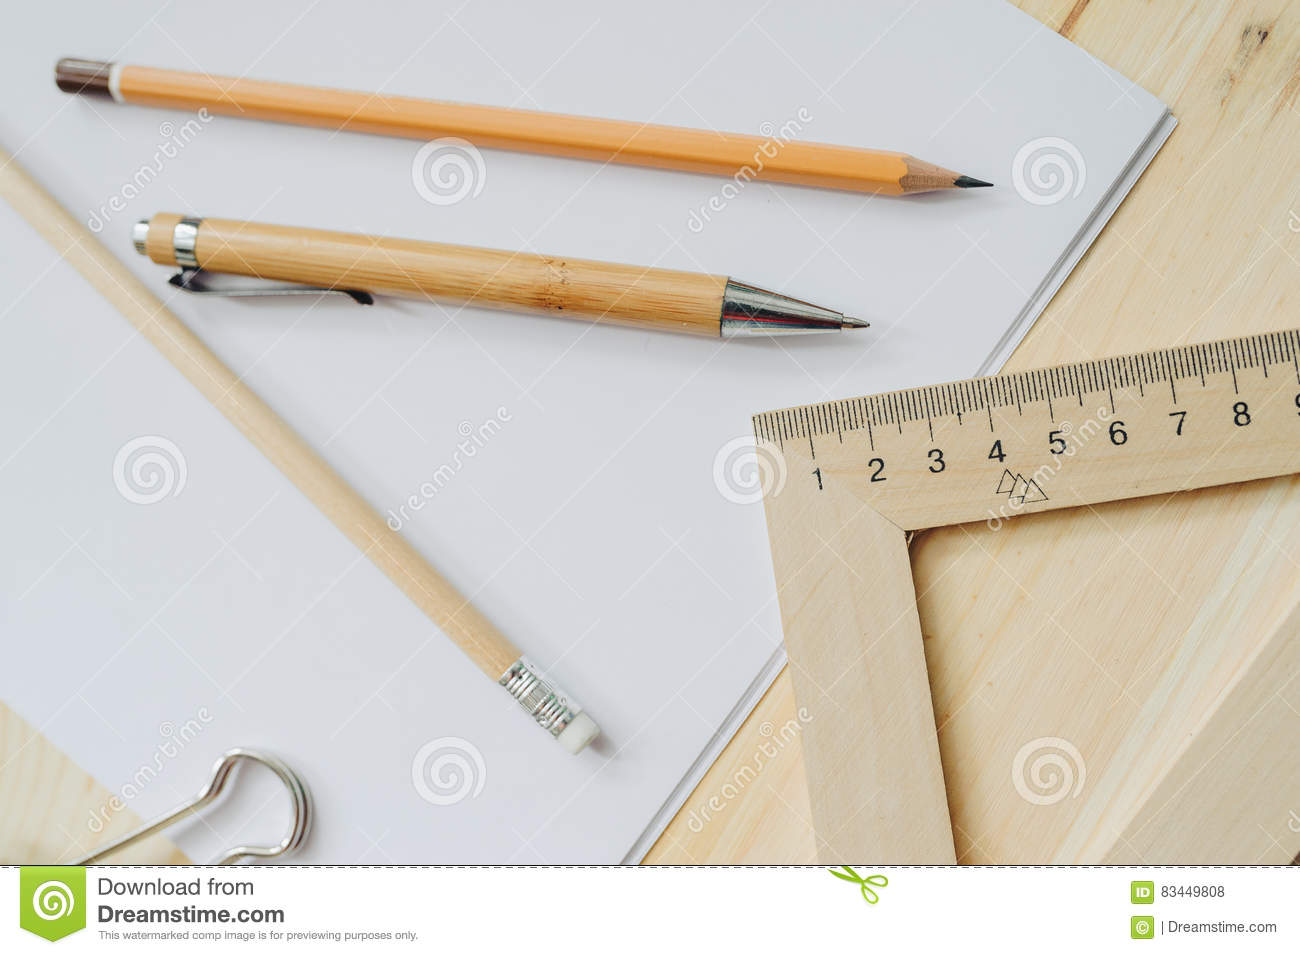 Wood Pencil, Pen, Triangle, Briefpapier Clip On The Desk In Daylight ...